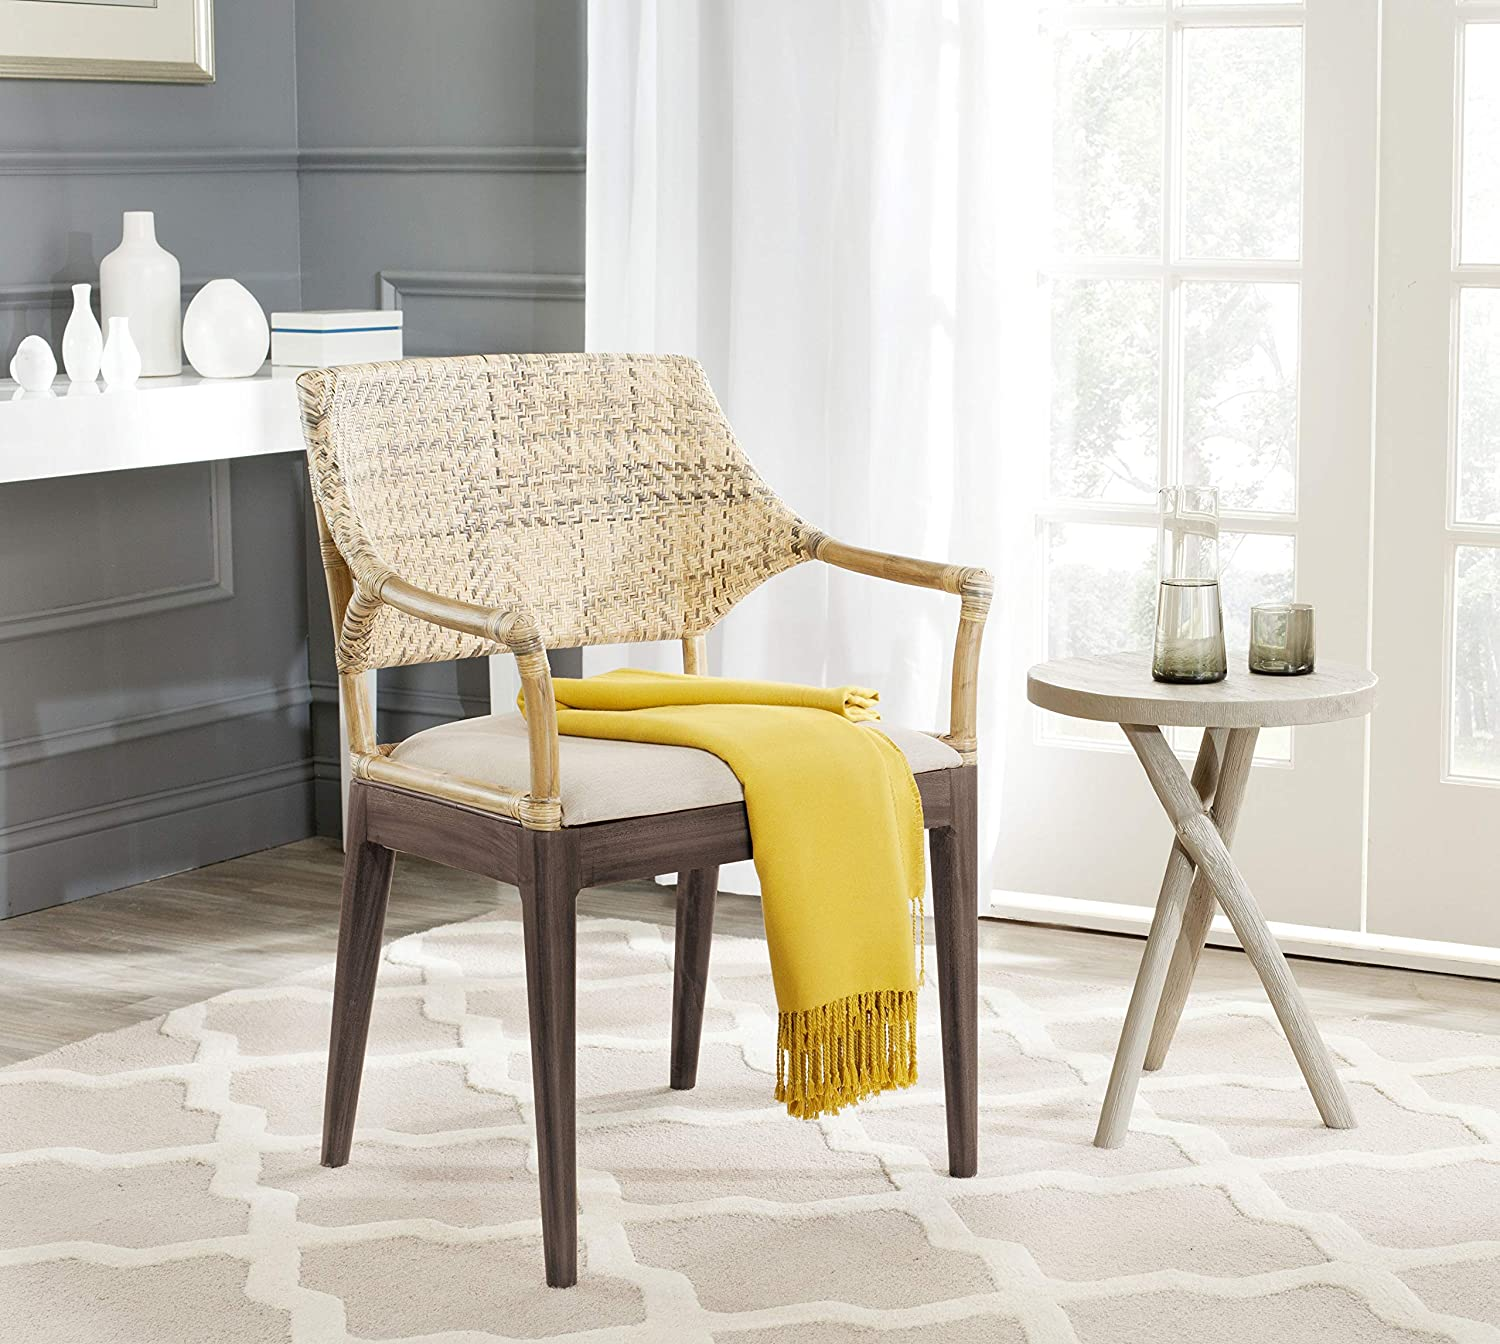 Safavieh Home Collection Carlo Arm Chair, Honey